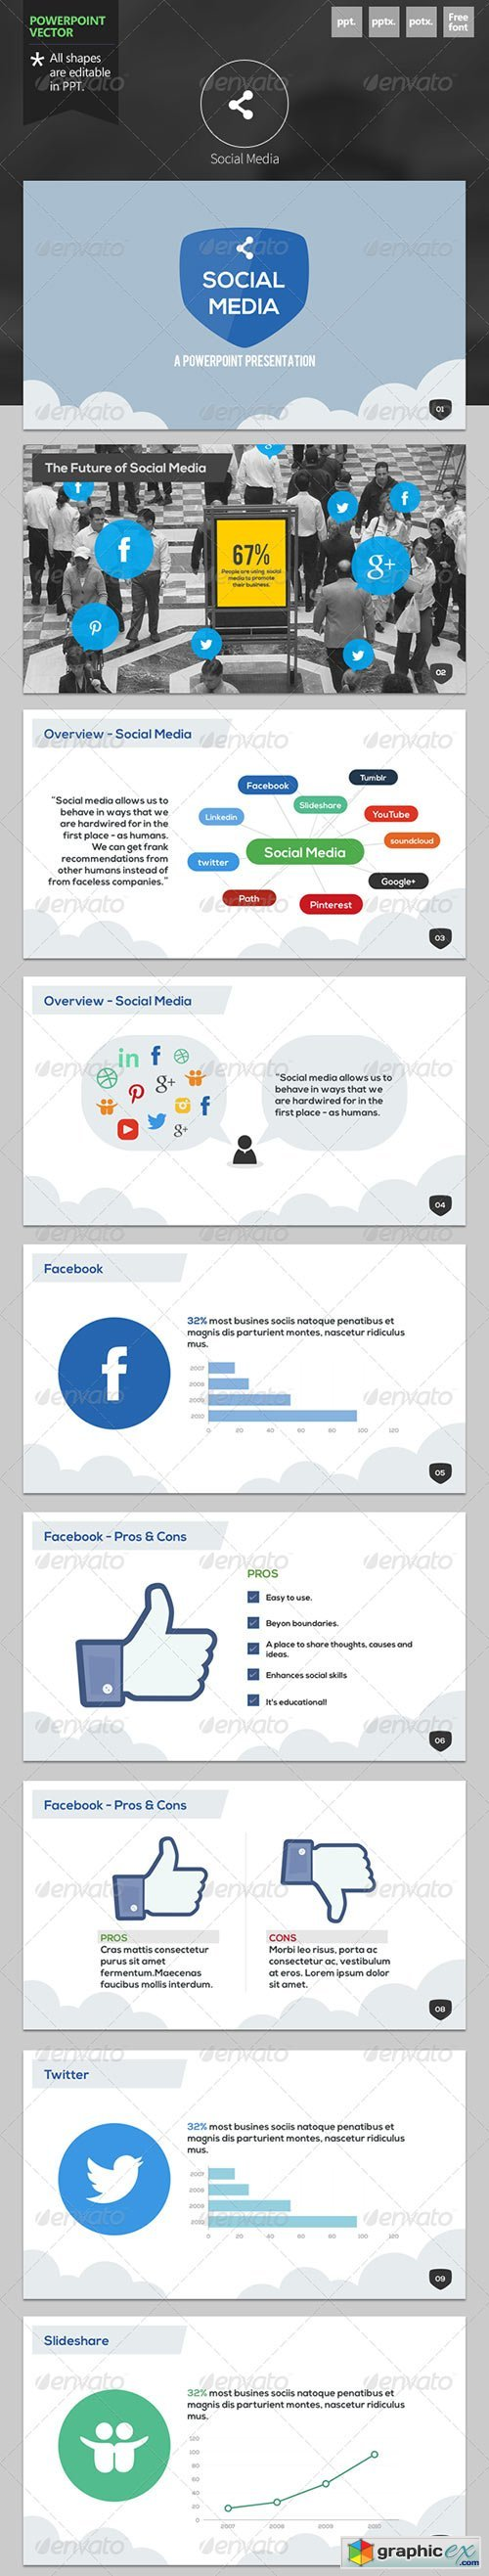 Social Media - Powerpoint Template